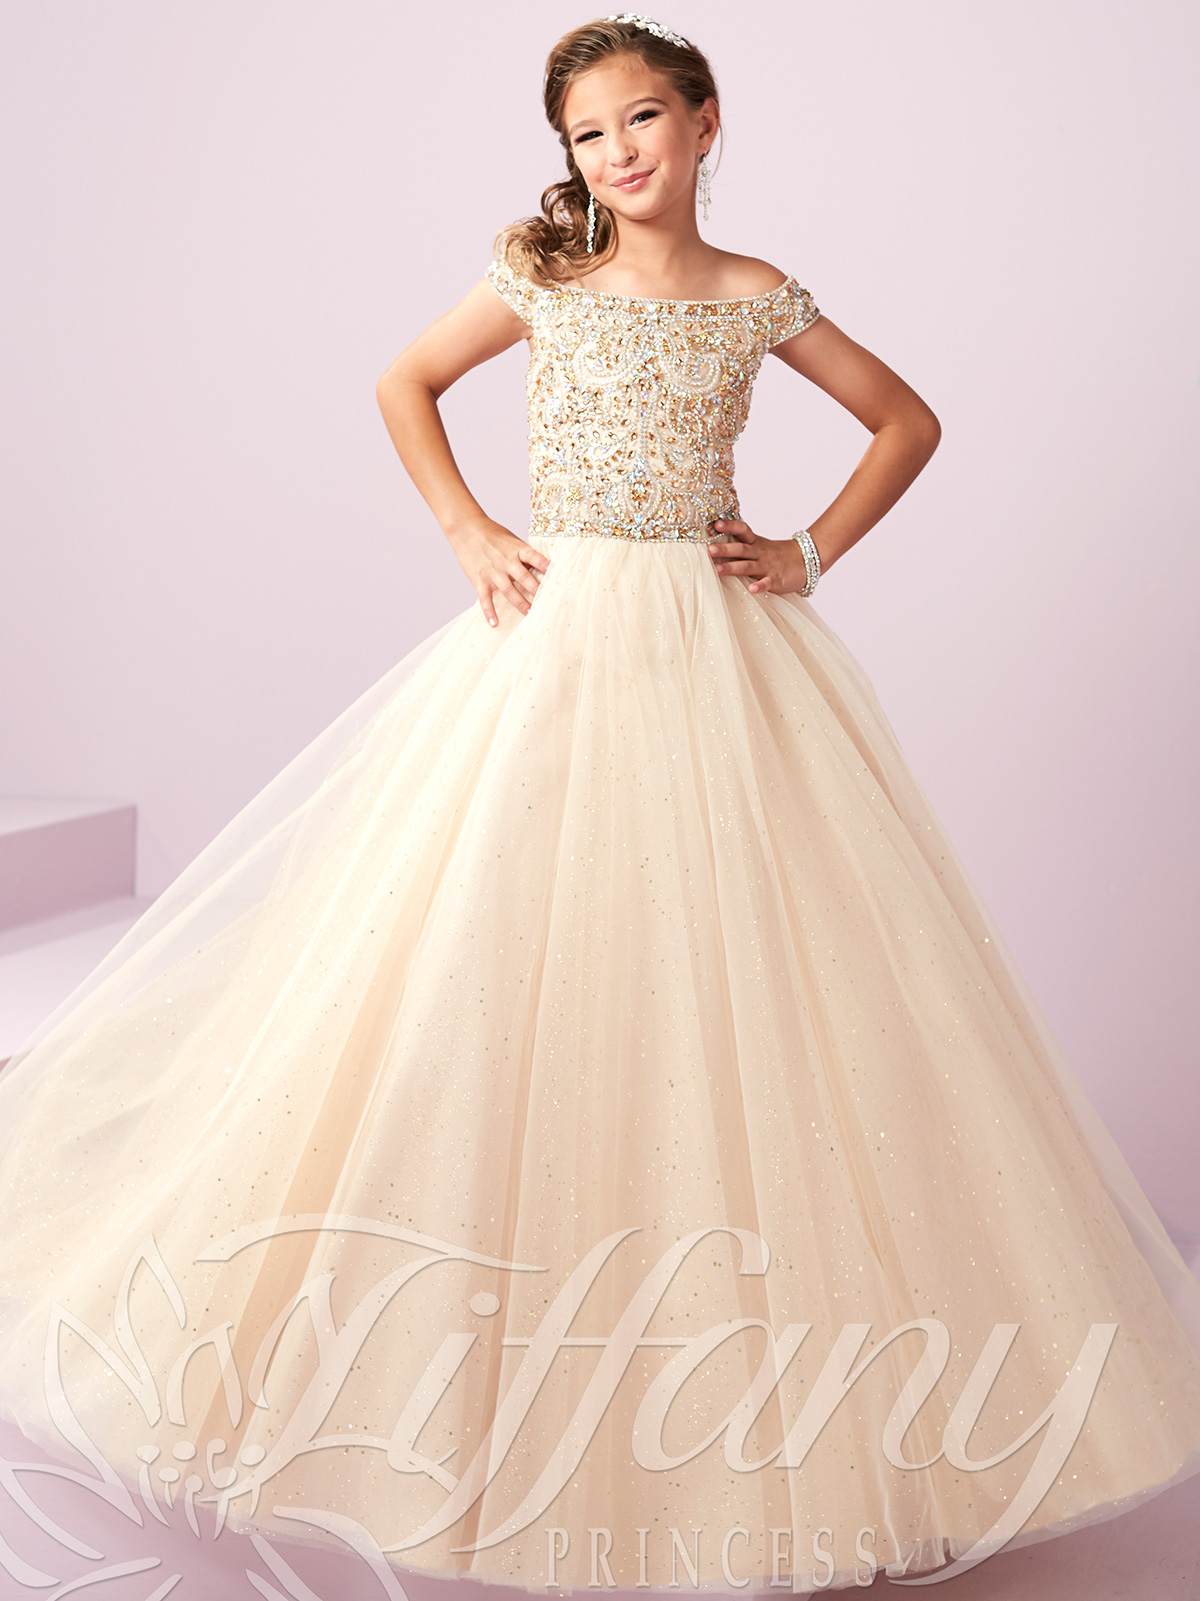 7e9b8534f39d Sparkle Tulle Pageant Dress by Tiffany Princess 13487